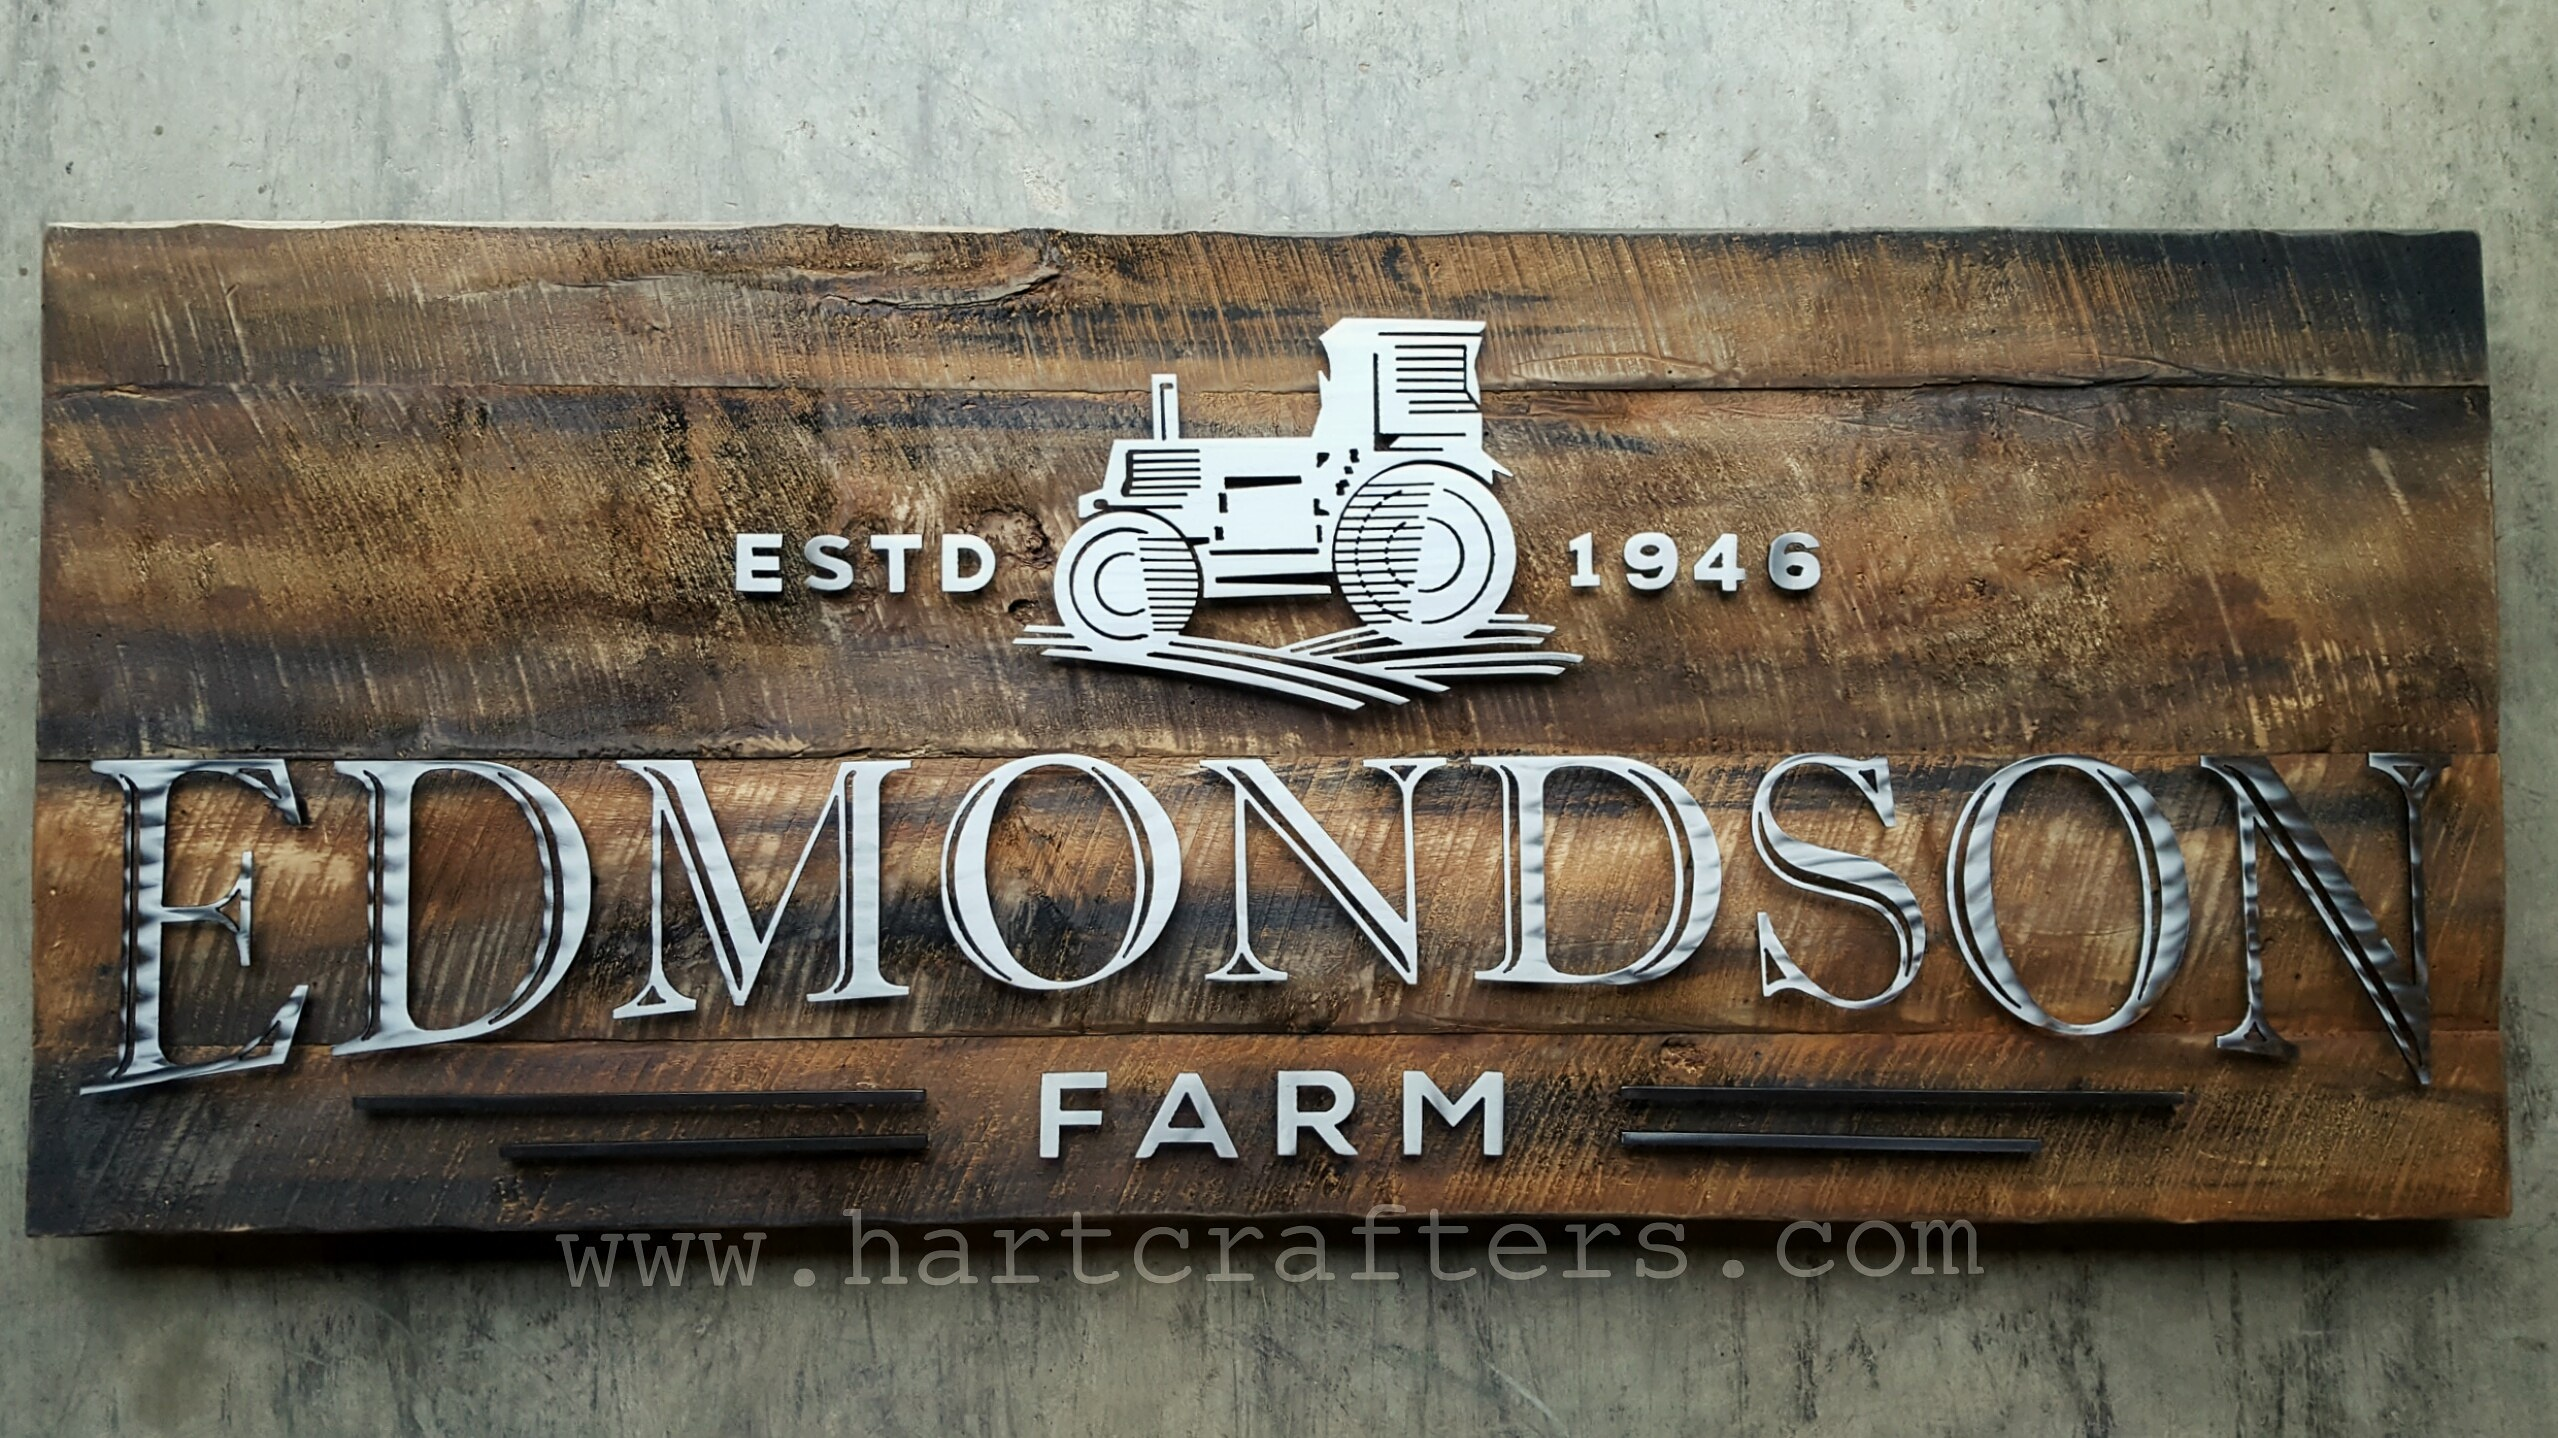 Edmondson Farm